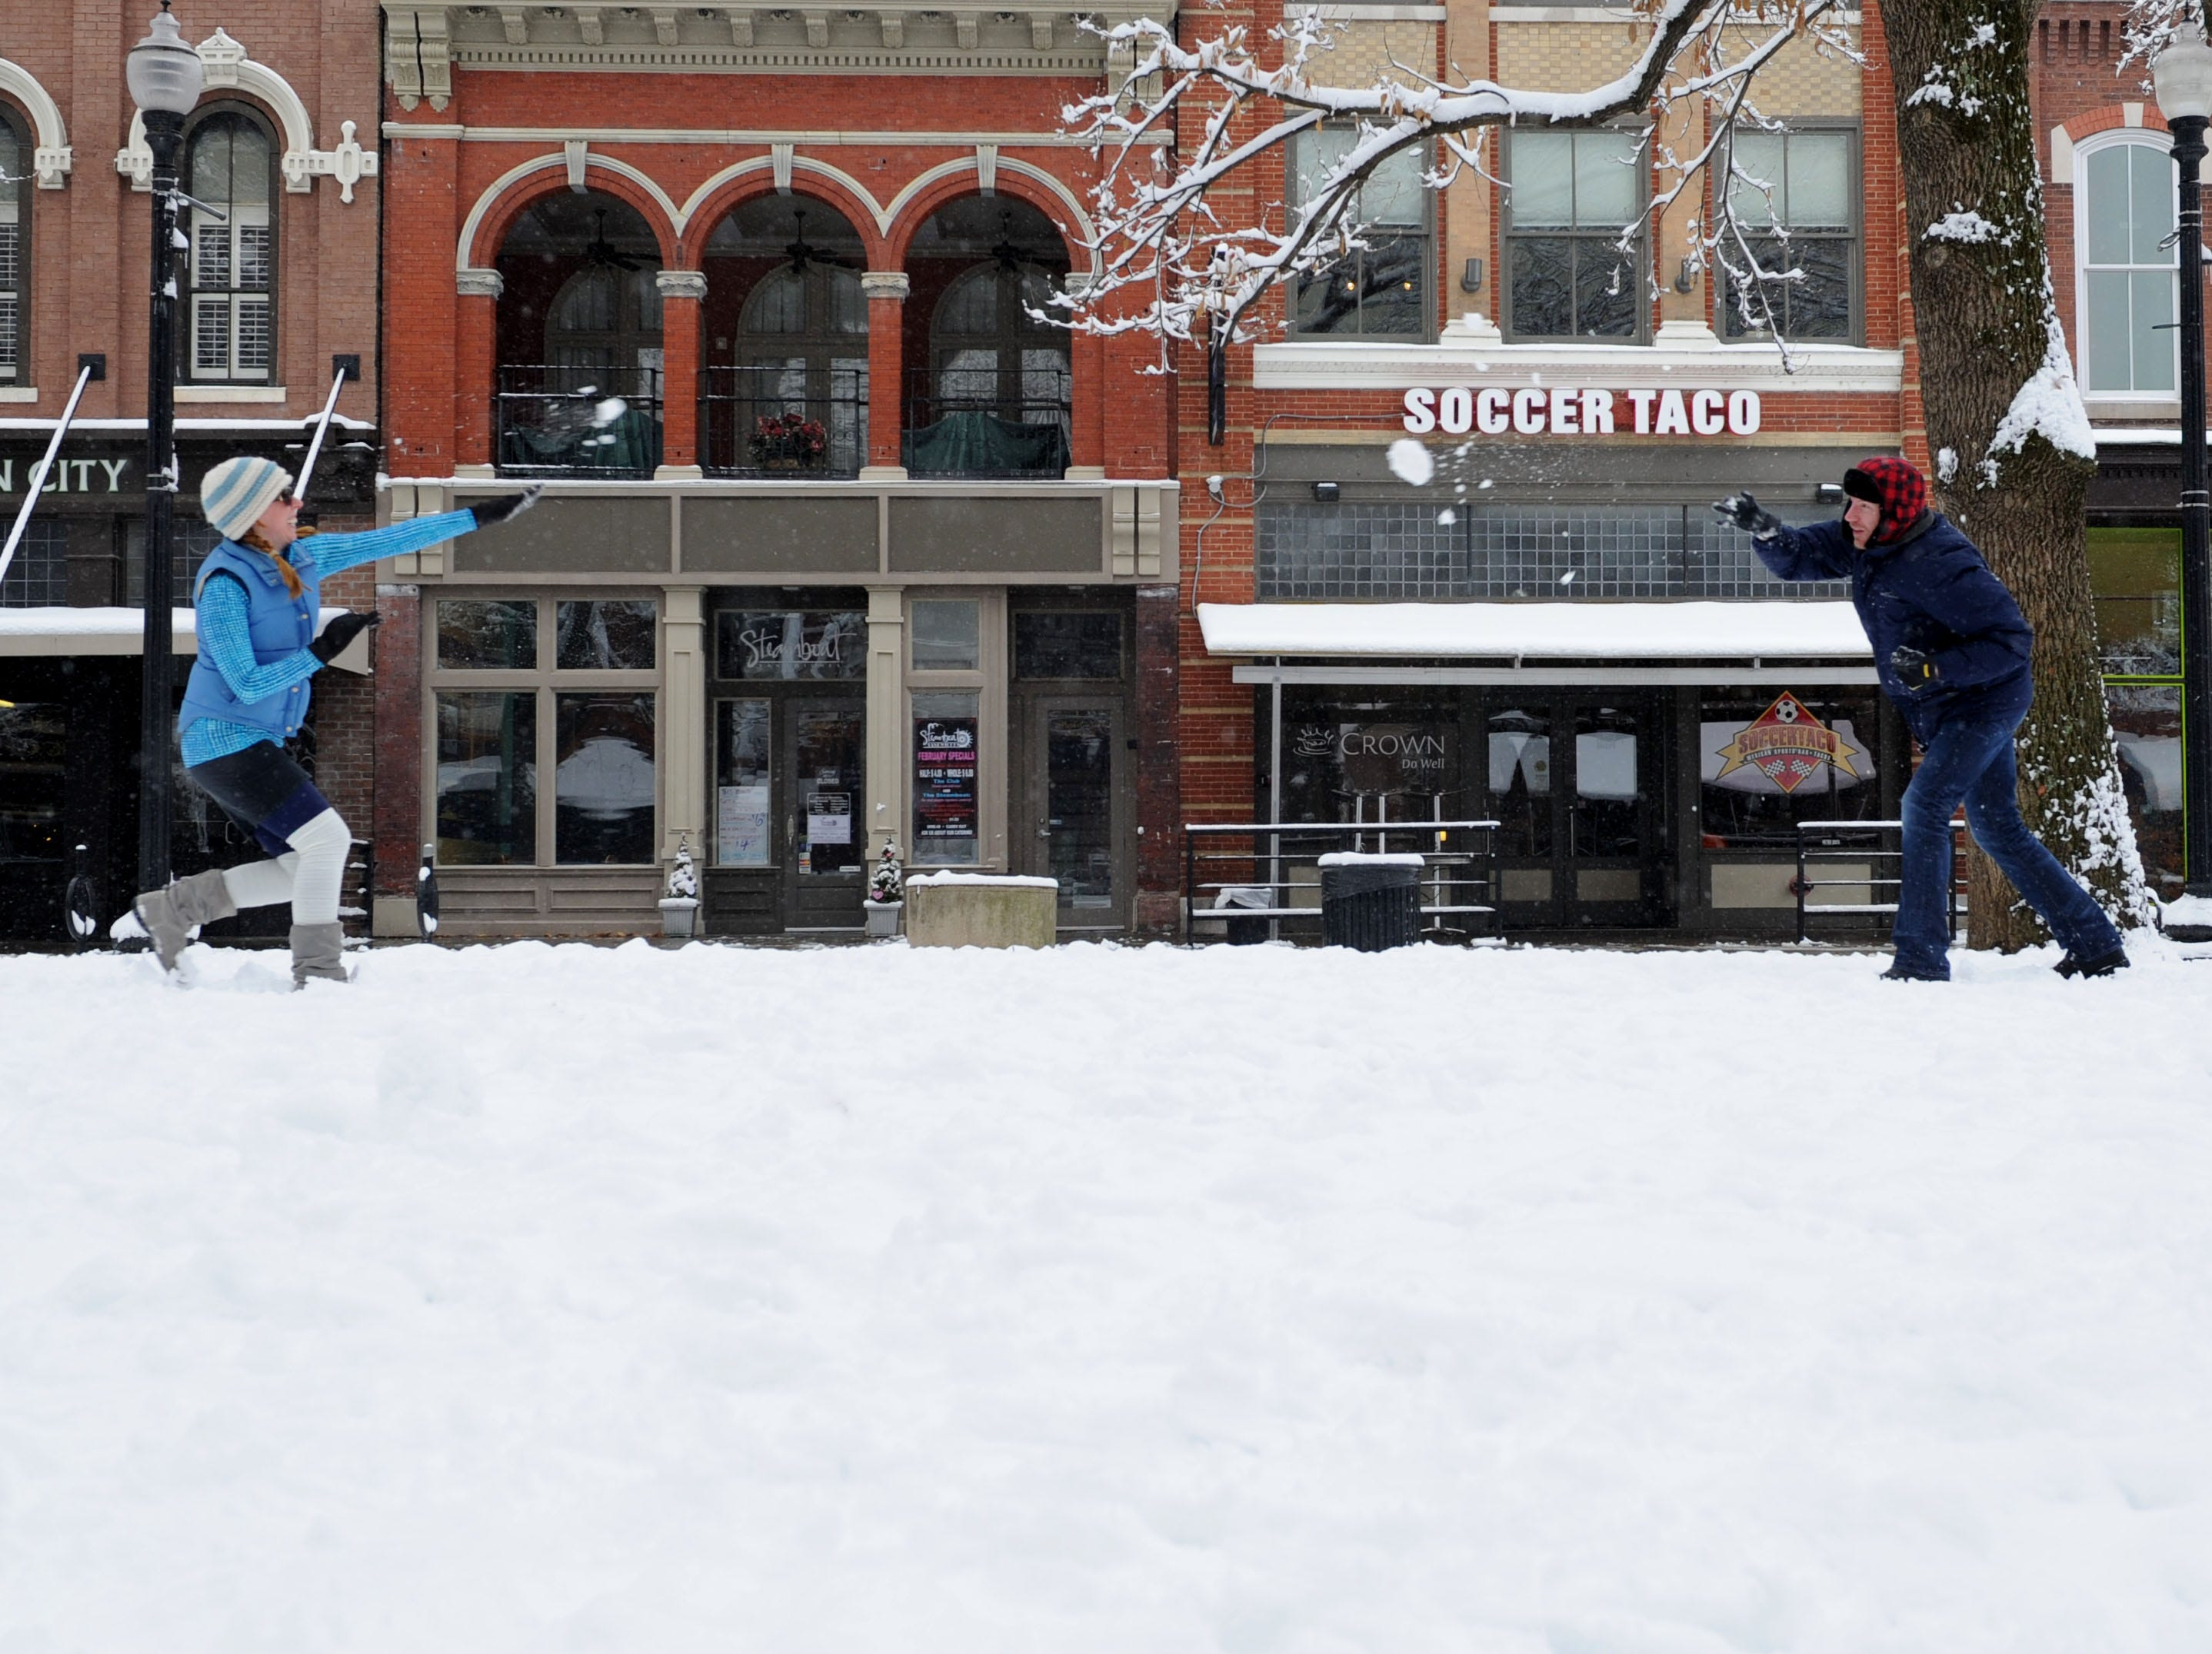 Morgan Fleming, left, and Jamie Shoemaker have a snowball fight at Market Square in downtown Knoxville on Thursday, Feb. 13, 2014. The winter storm on Wednesday brought six inches of snow to the Knoxville area.